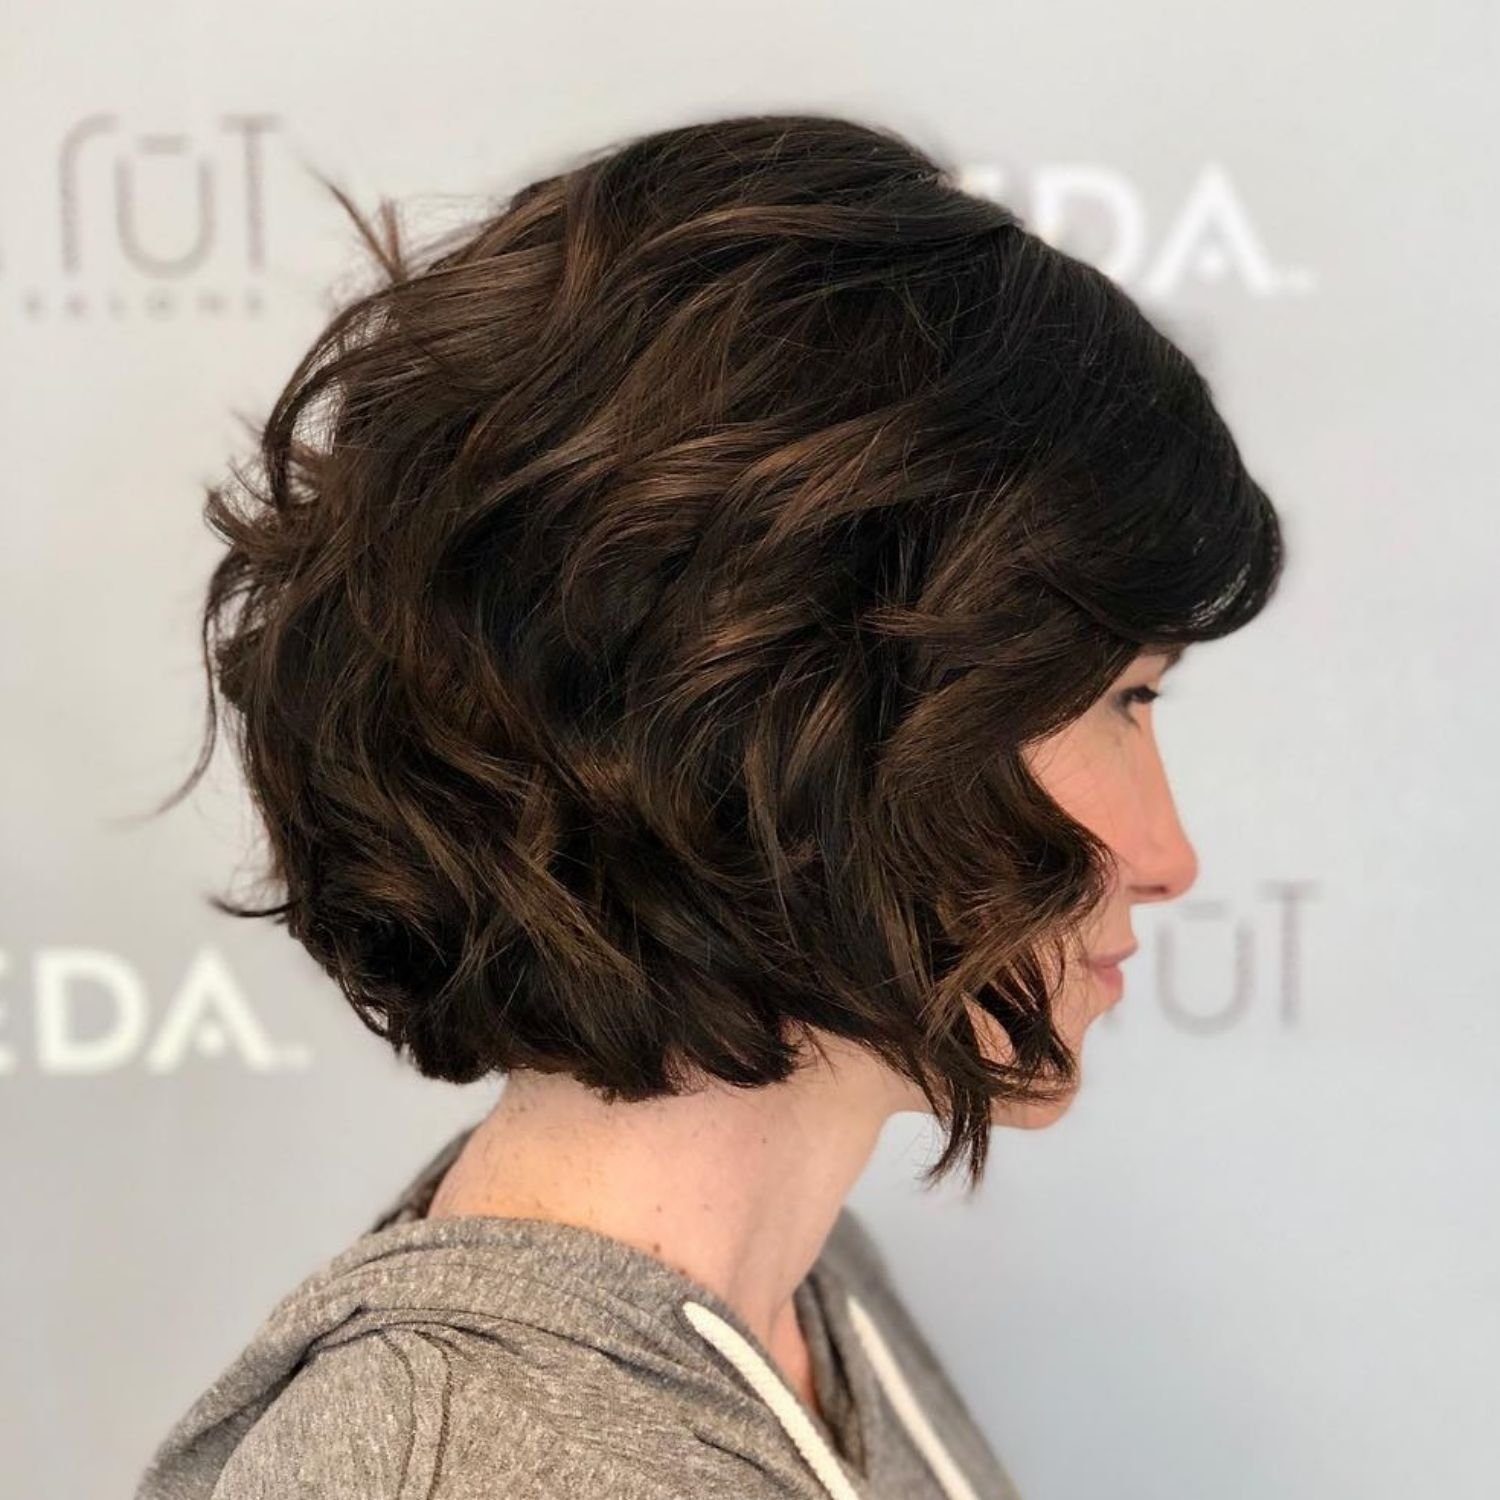 60 Most Magnetizing Hairstyles For Thick Wavy Hair Thick Wavy Hair Short Thick Wavy Hair Chin Length Hair